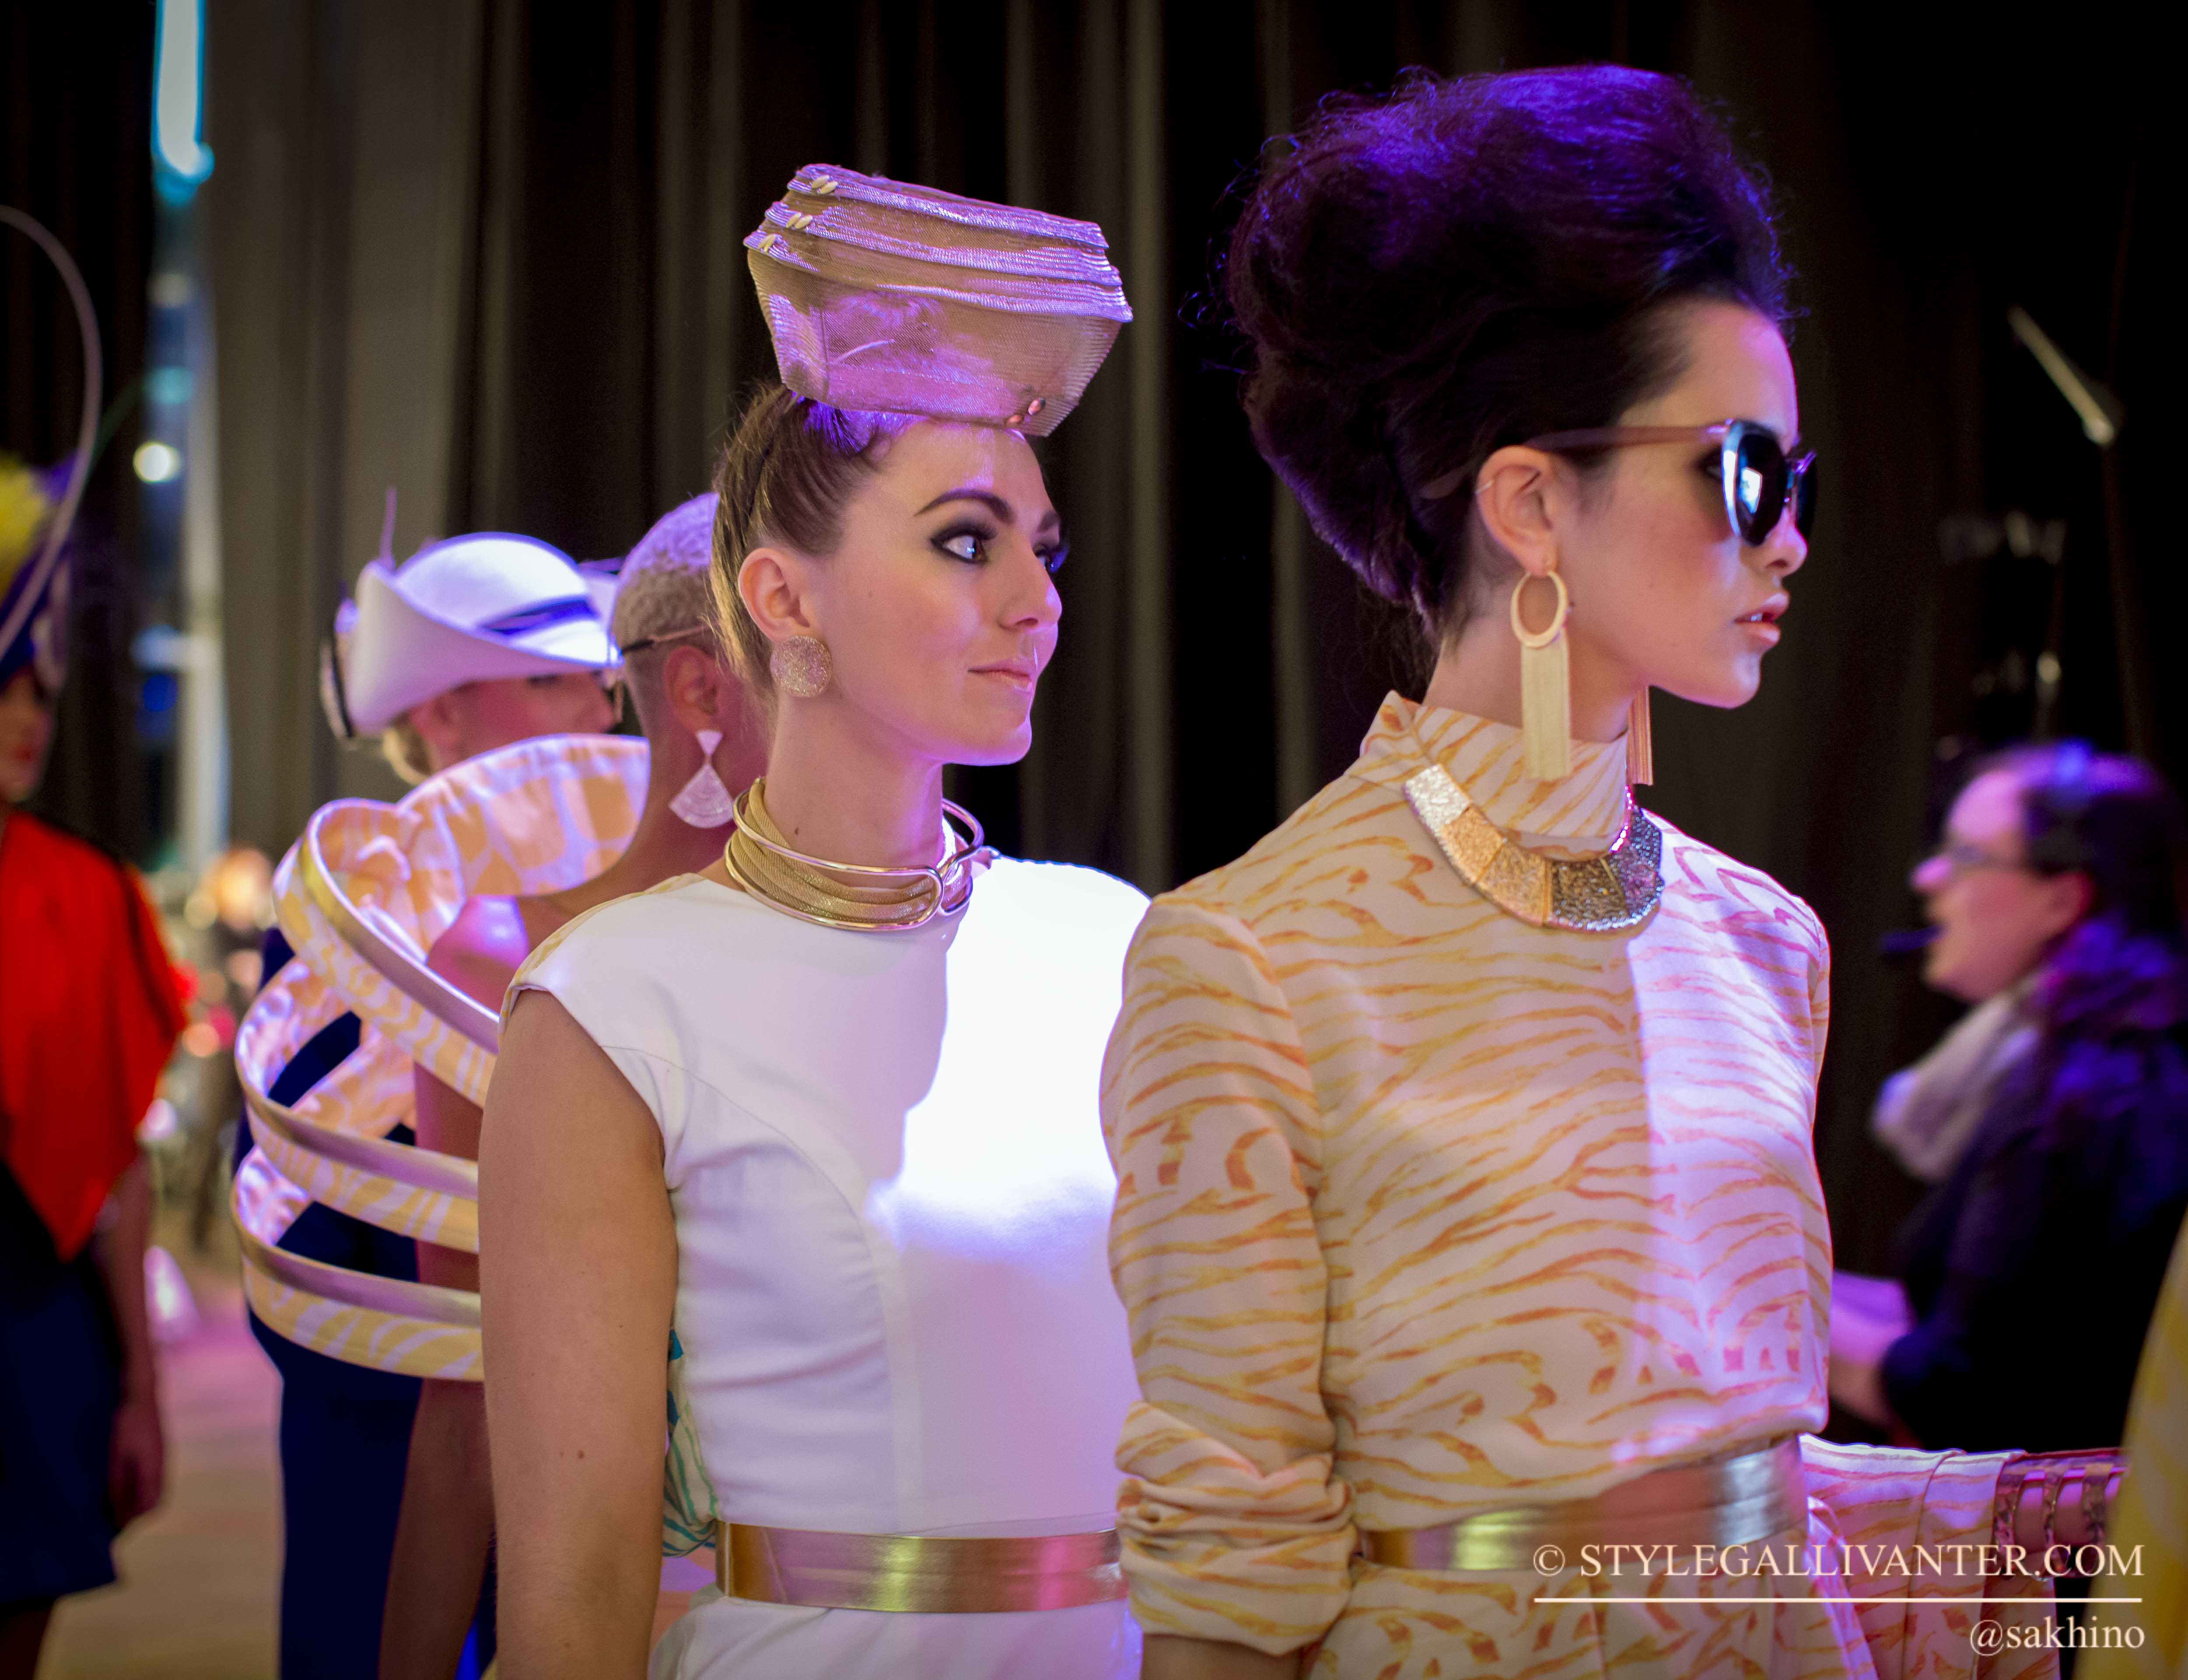 mirandaSAKHINO-copyright-2015_not-to-be-used-without-permission_mirandasakhino-runway-2015_mirandasakhino-fashfest-miranda-sakhino-resort-collection_miranda-sakhino-fashfest-29